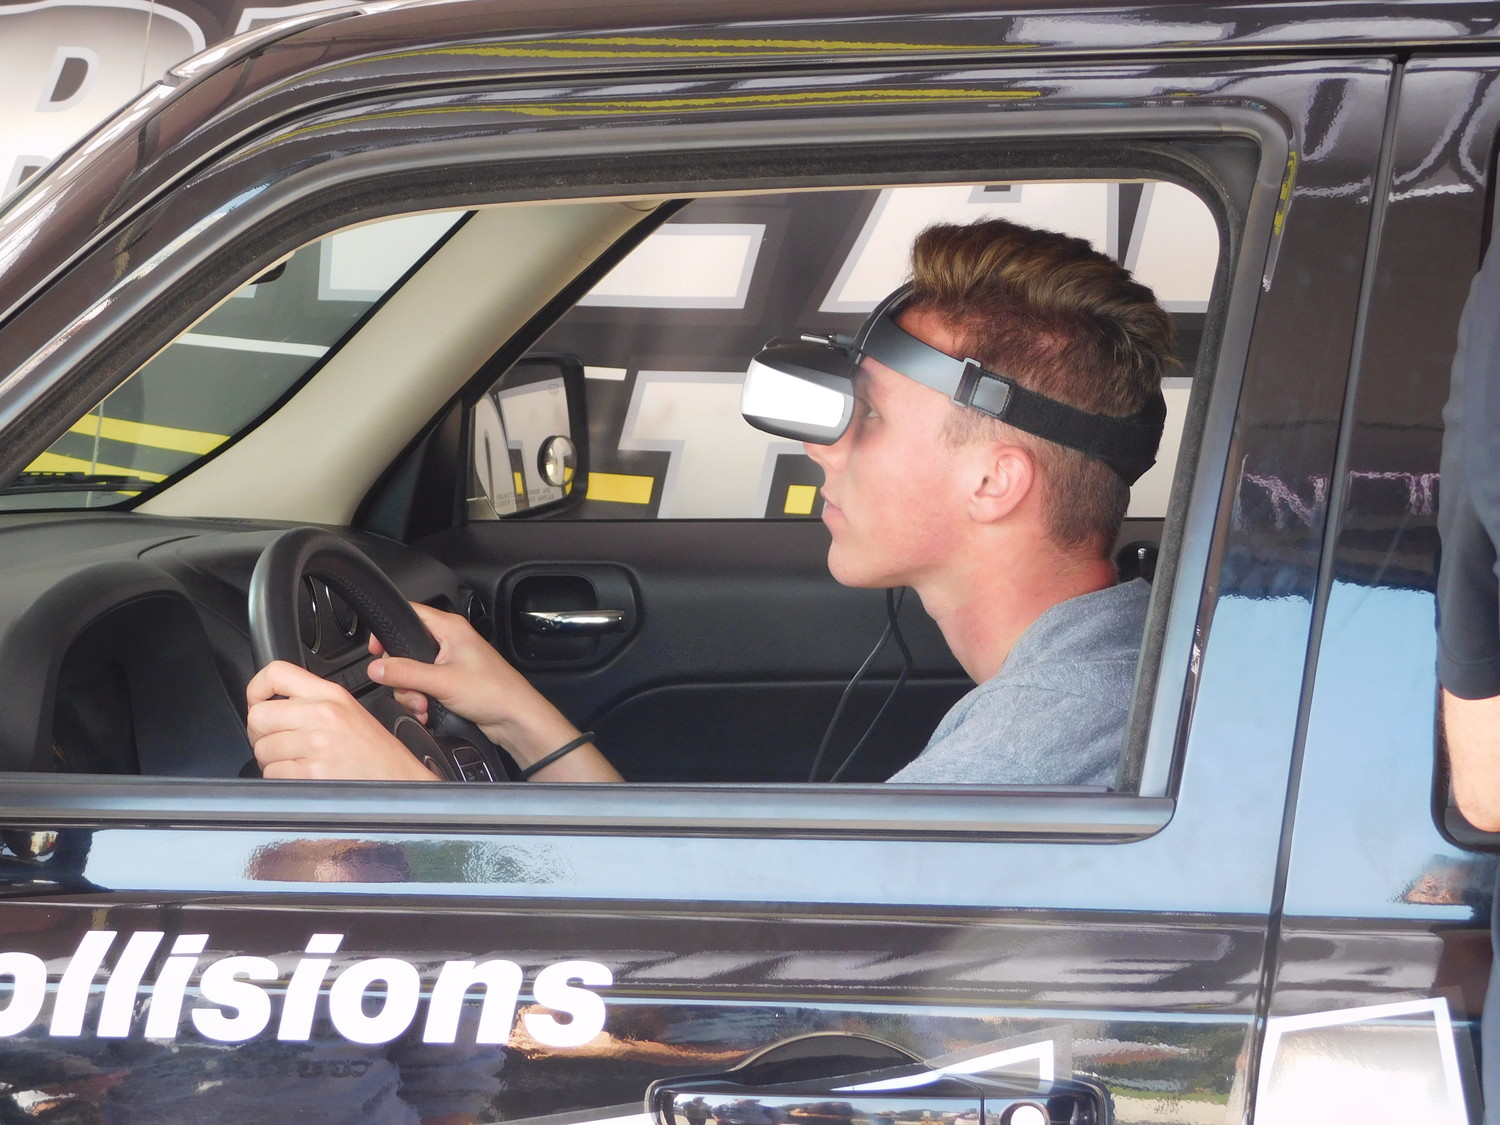 Jason Baker tried to focus, but the impairment got the better of him — his simulation ended in a crash.